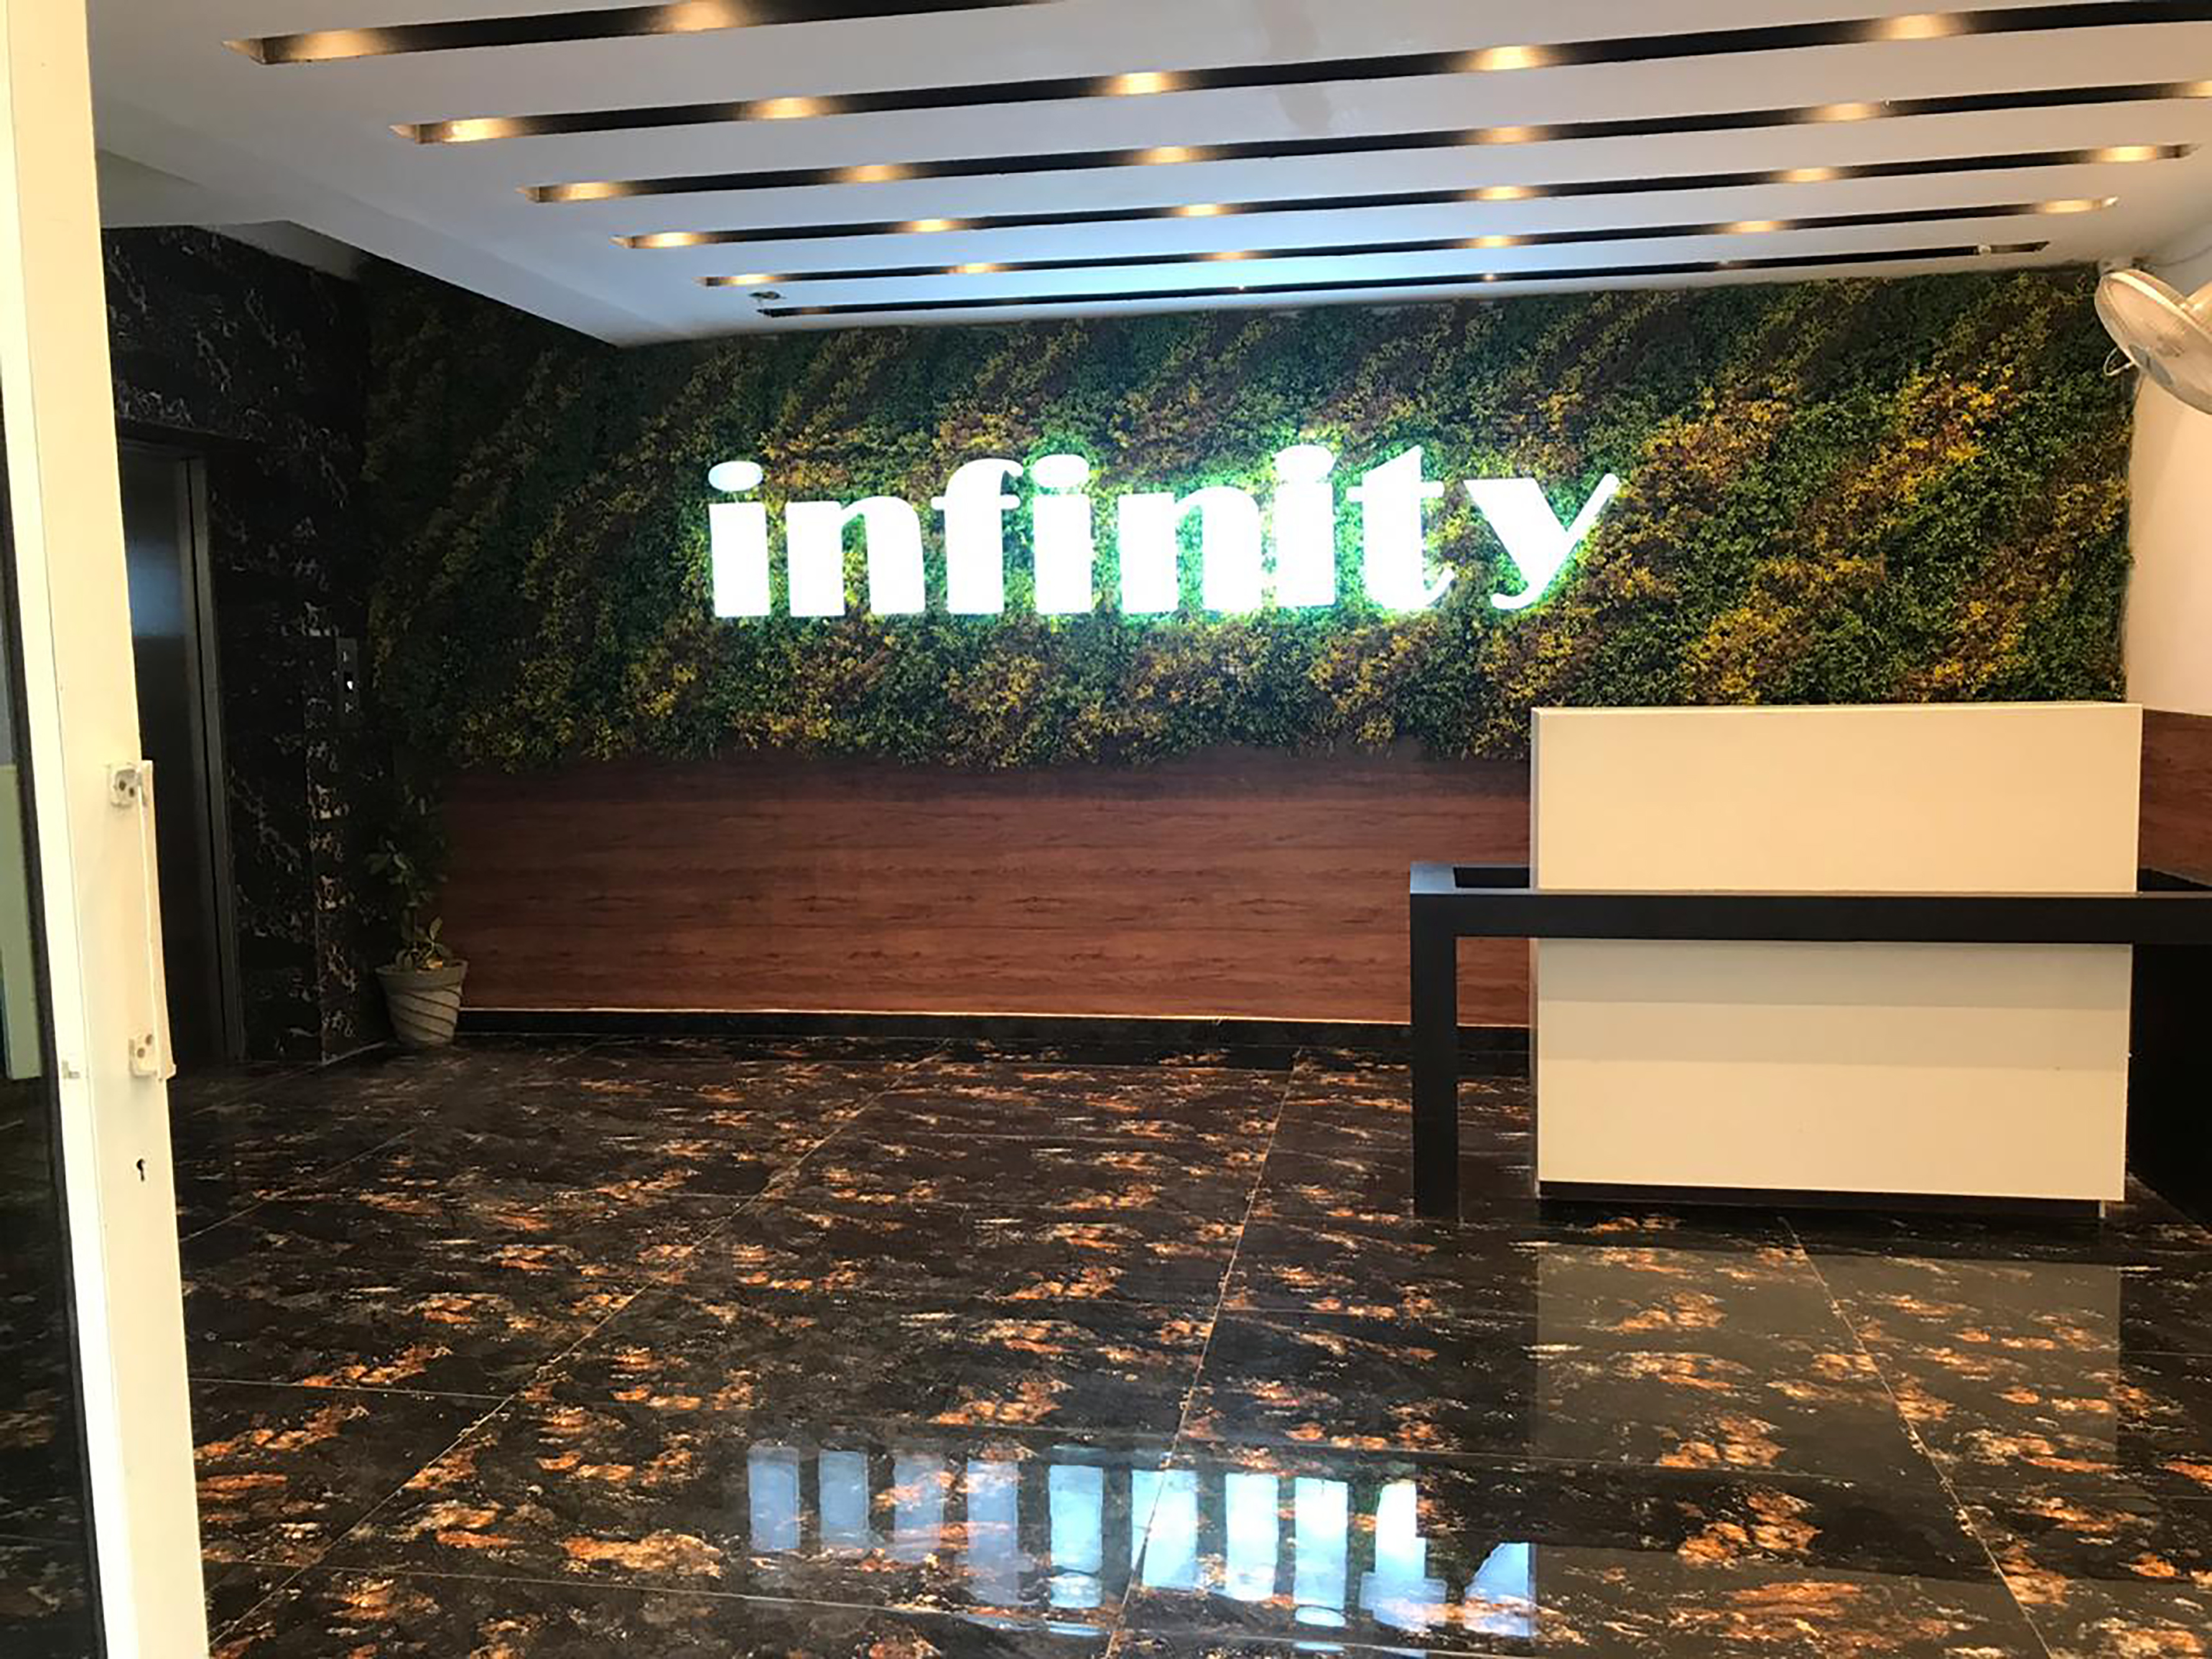 Infinity Spaces plans to expand in Gurugram, Pune, Bangalore, and Indore